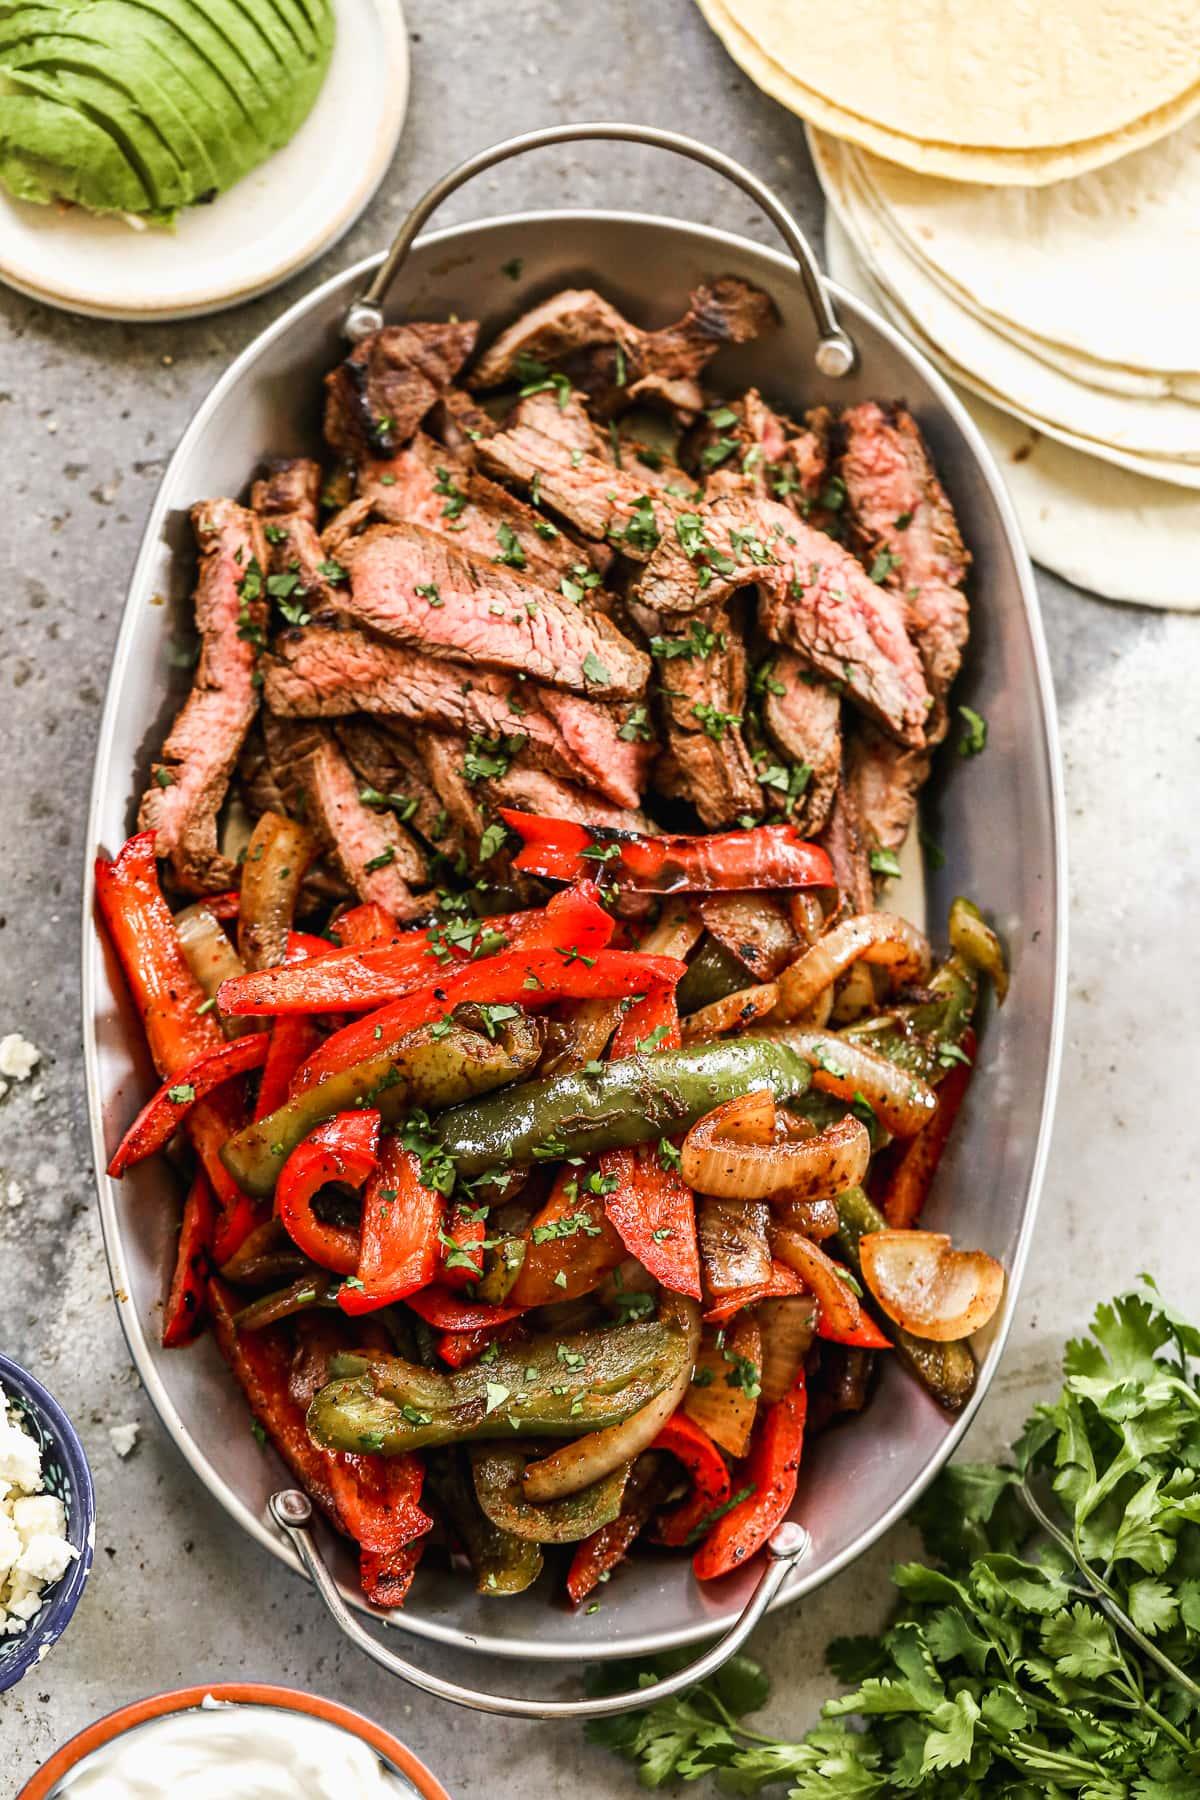 Beef fajitas with vegetables in a bowl